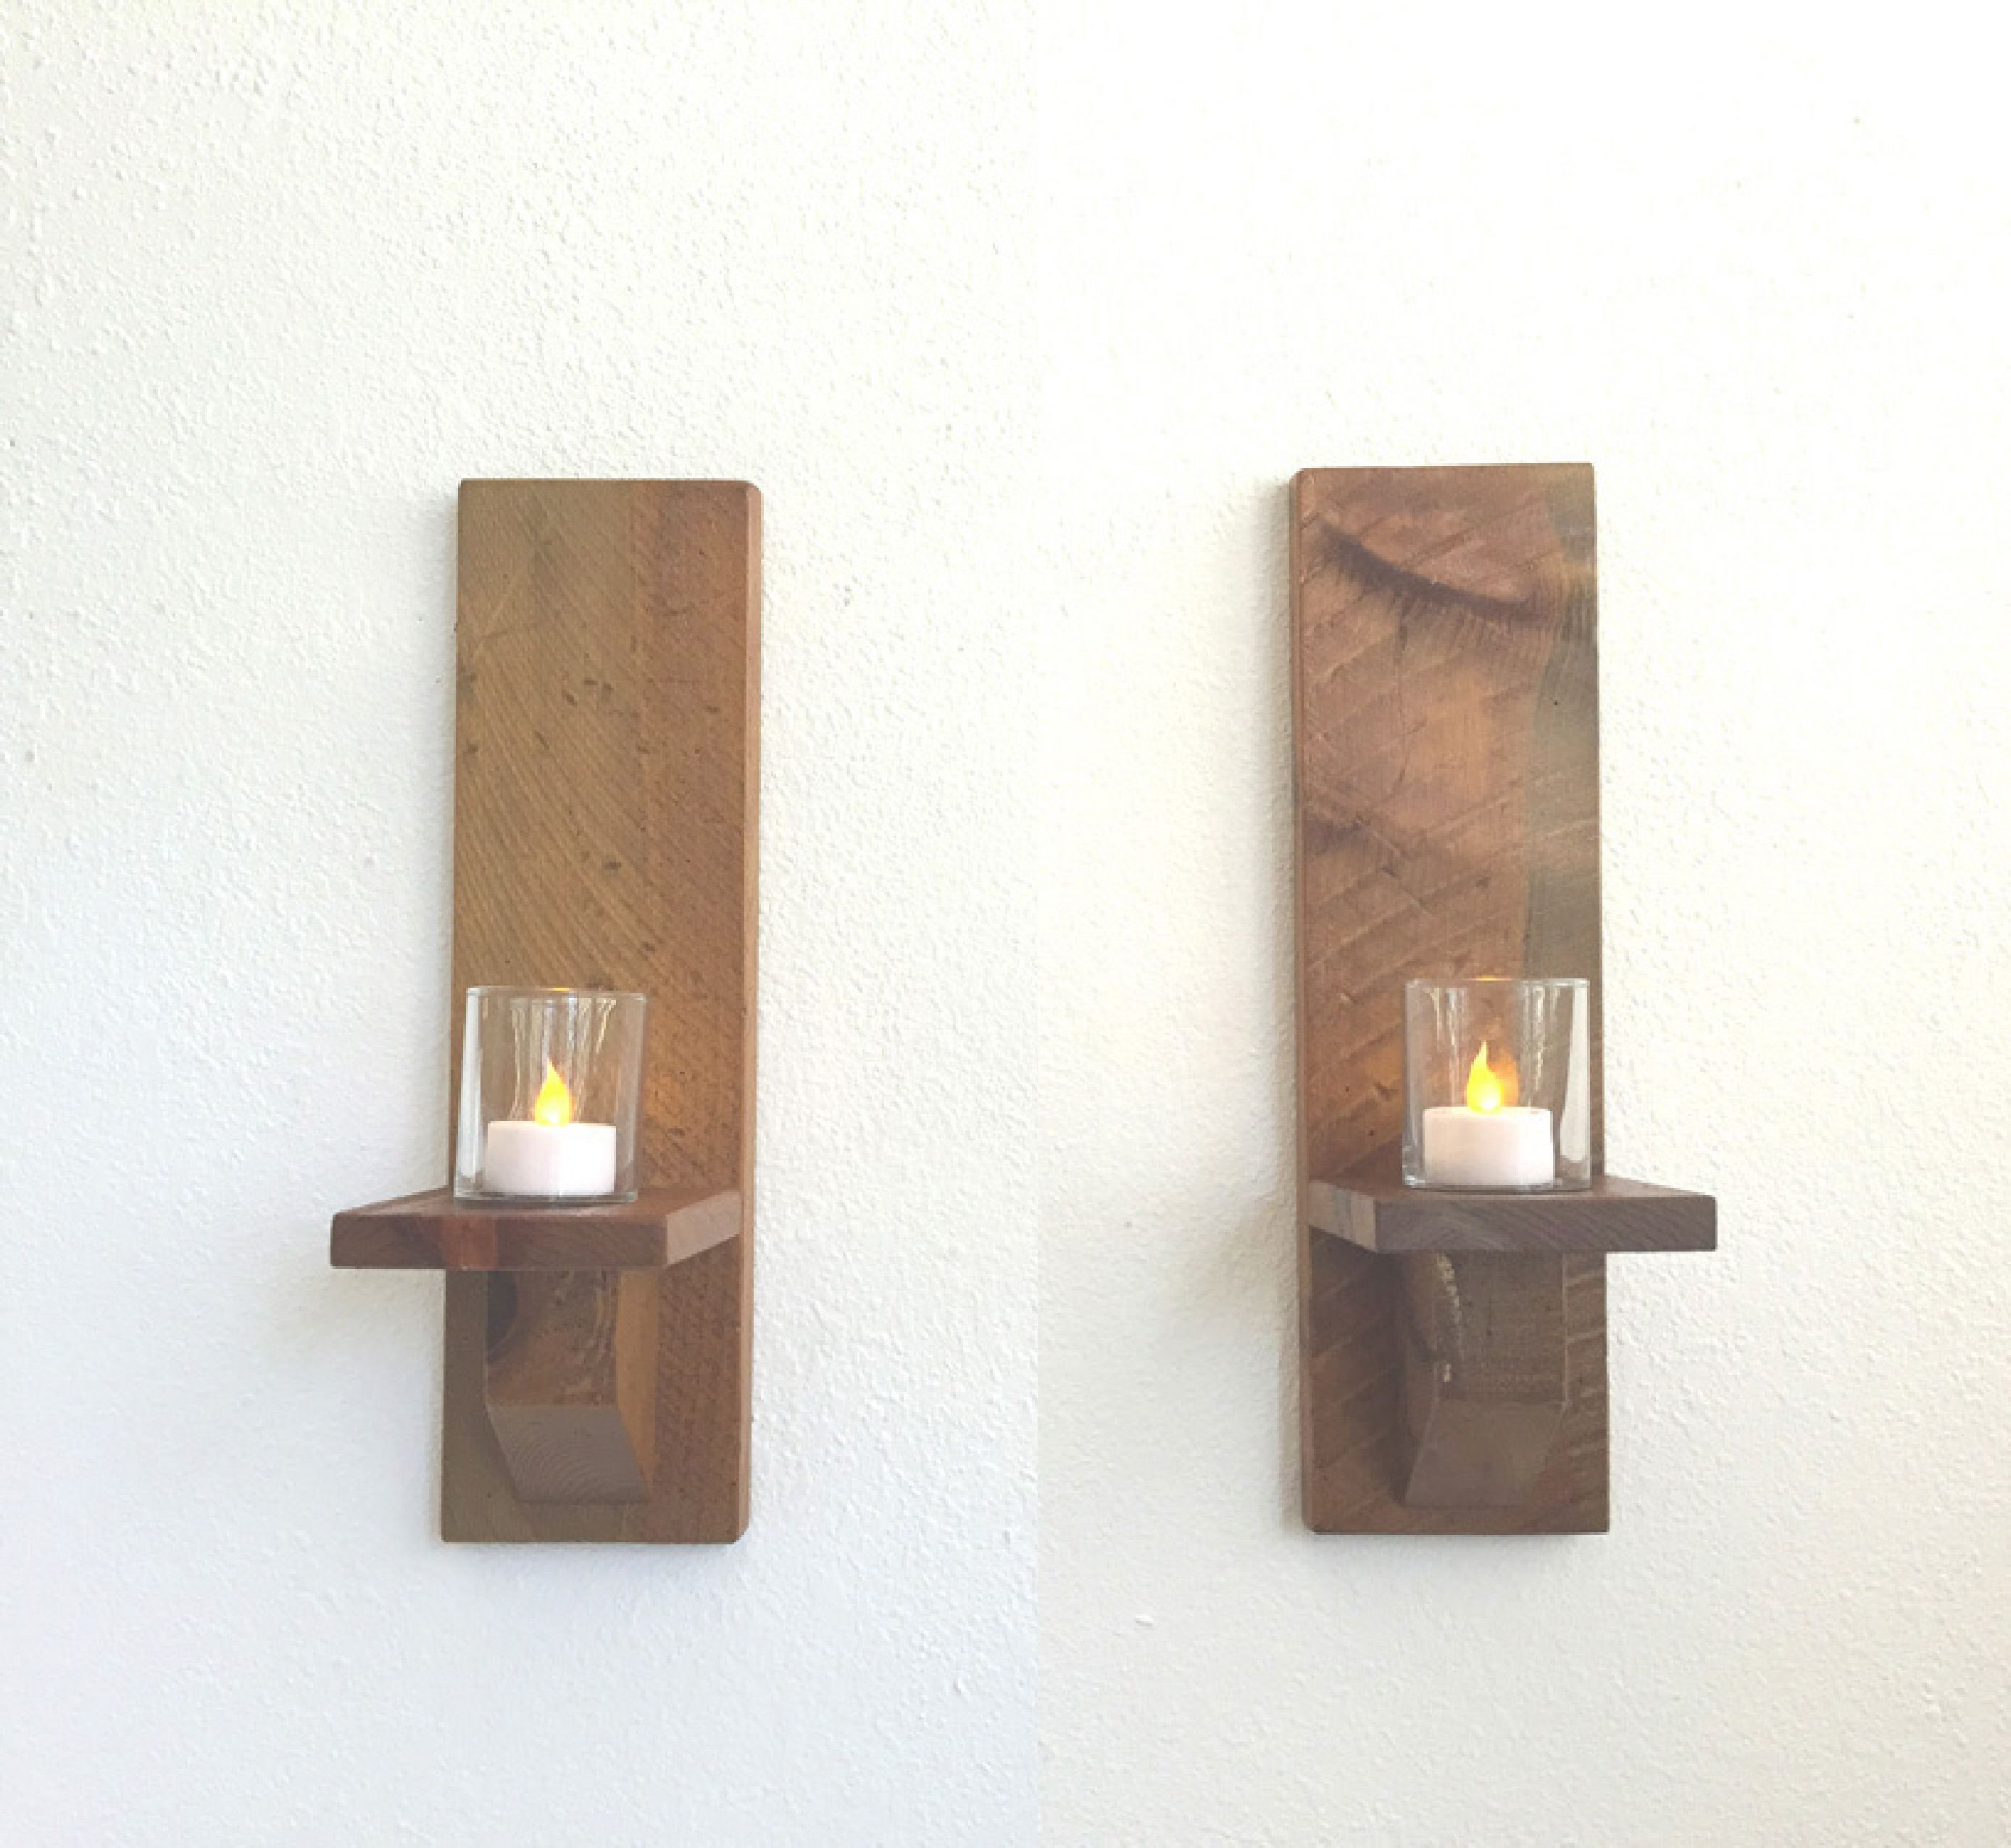 Buy a Hand Made Rustic Wood Wall Sconces, Candle Sconces, Wall Candle  Holders (Set Of 2) Dark Stain, made to order from Adlite Creations    CustomMade.com